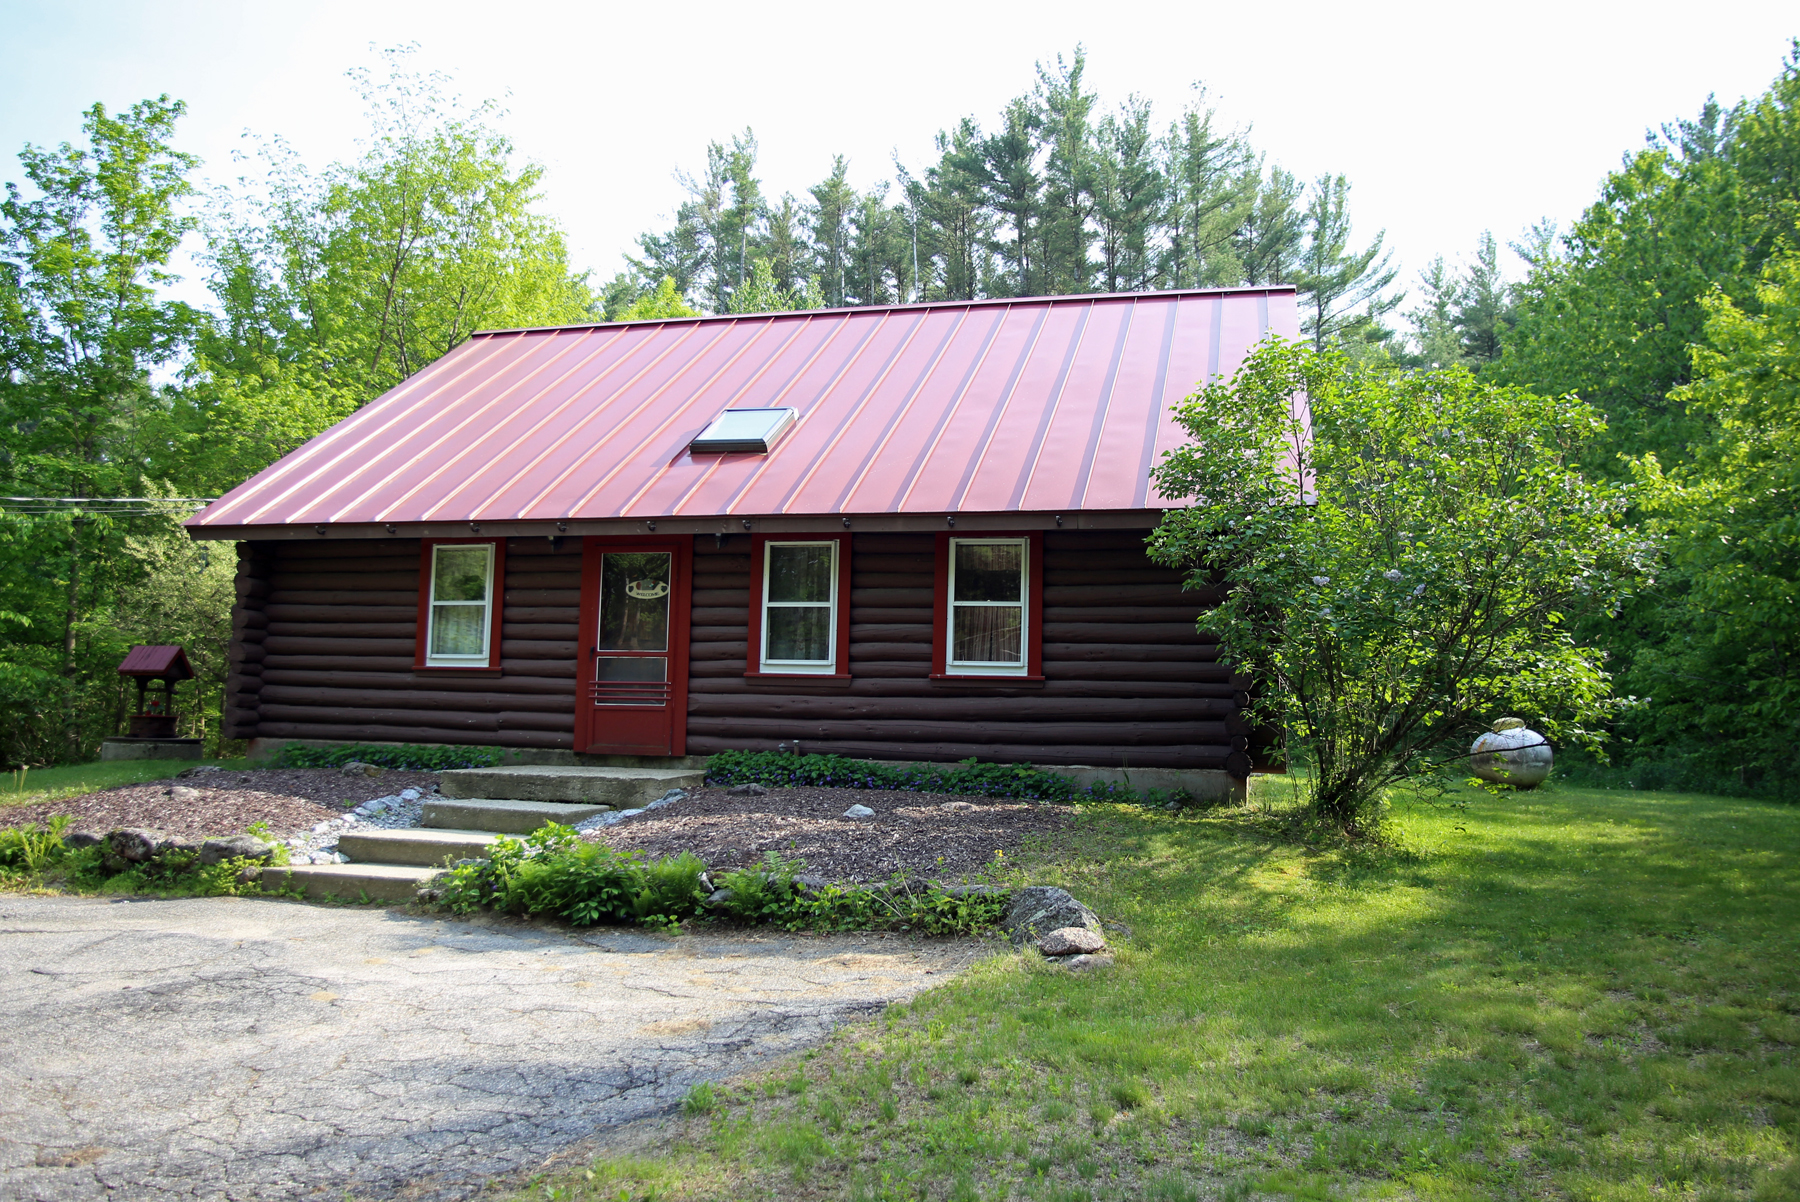 Single Family Home for Sale at 149 Morse Hill, Newbury 149 Morse Hill Rd Newbury, New Hampshire, 03255 United States